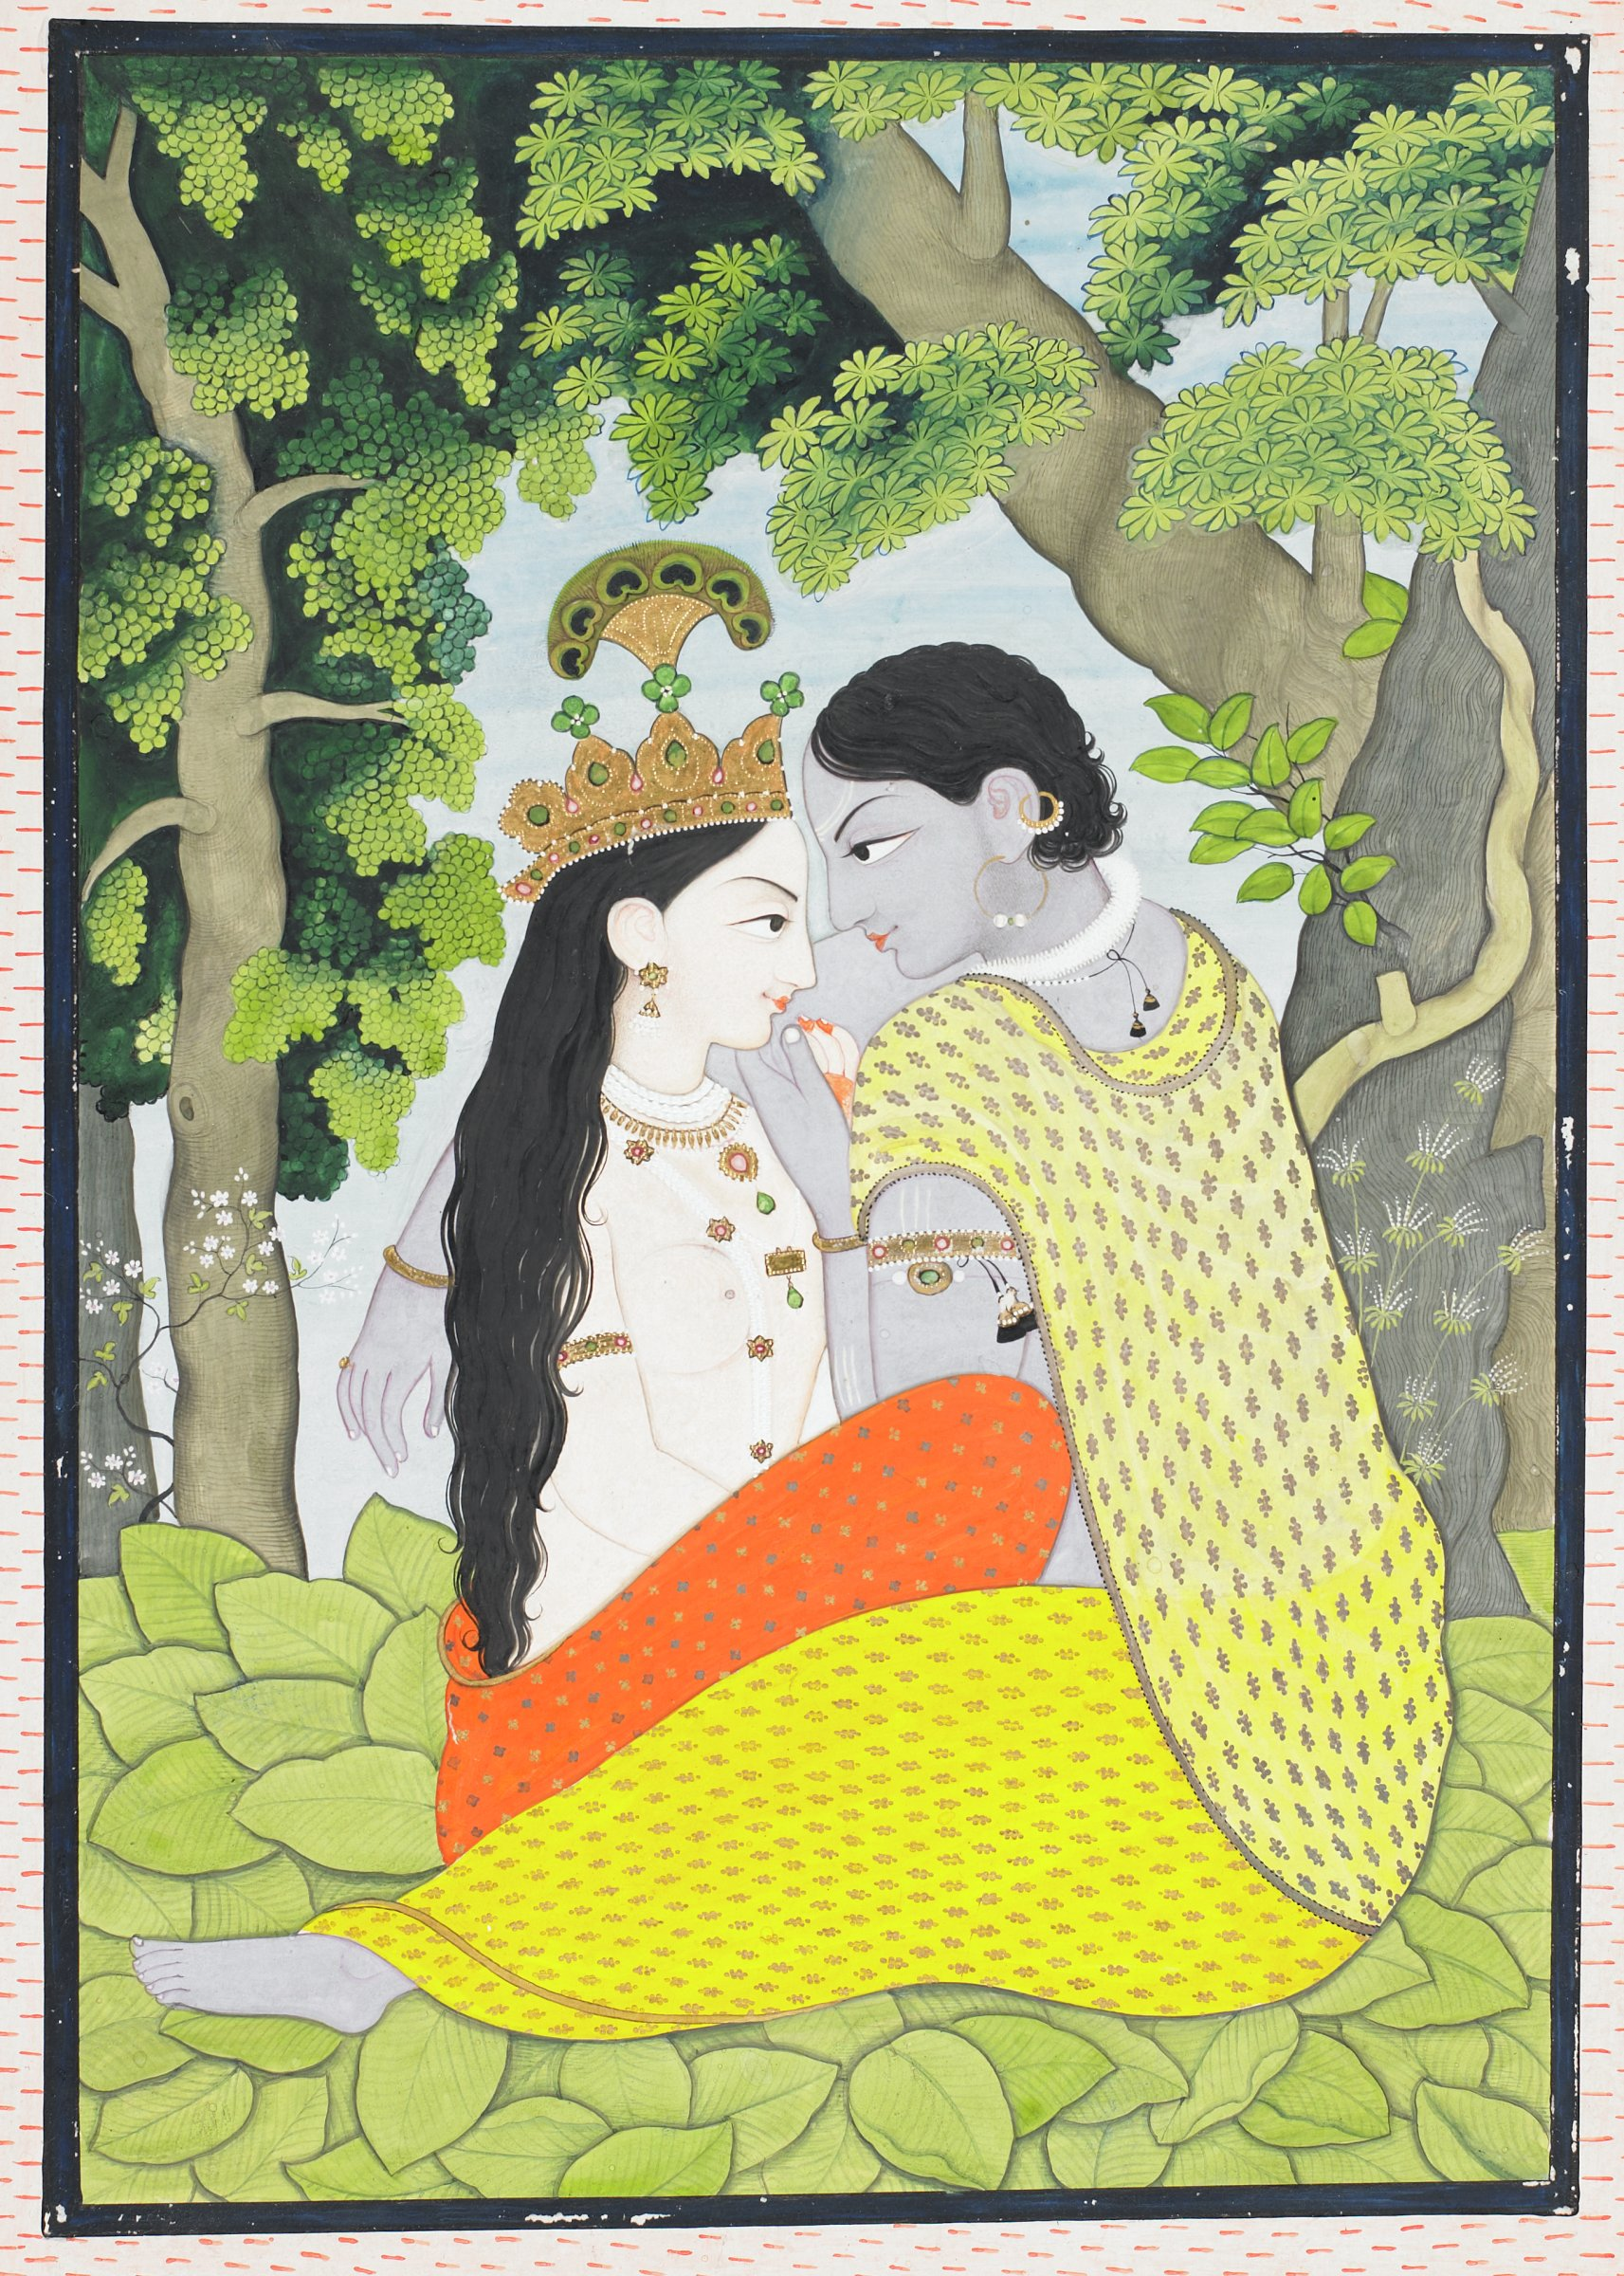 A painting of Radha and Krishna in an outdoor setting